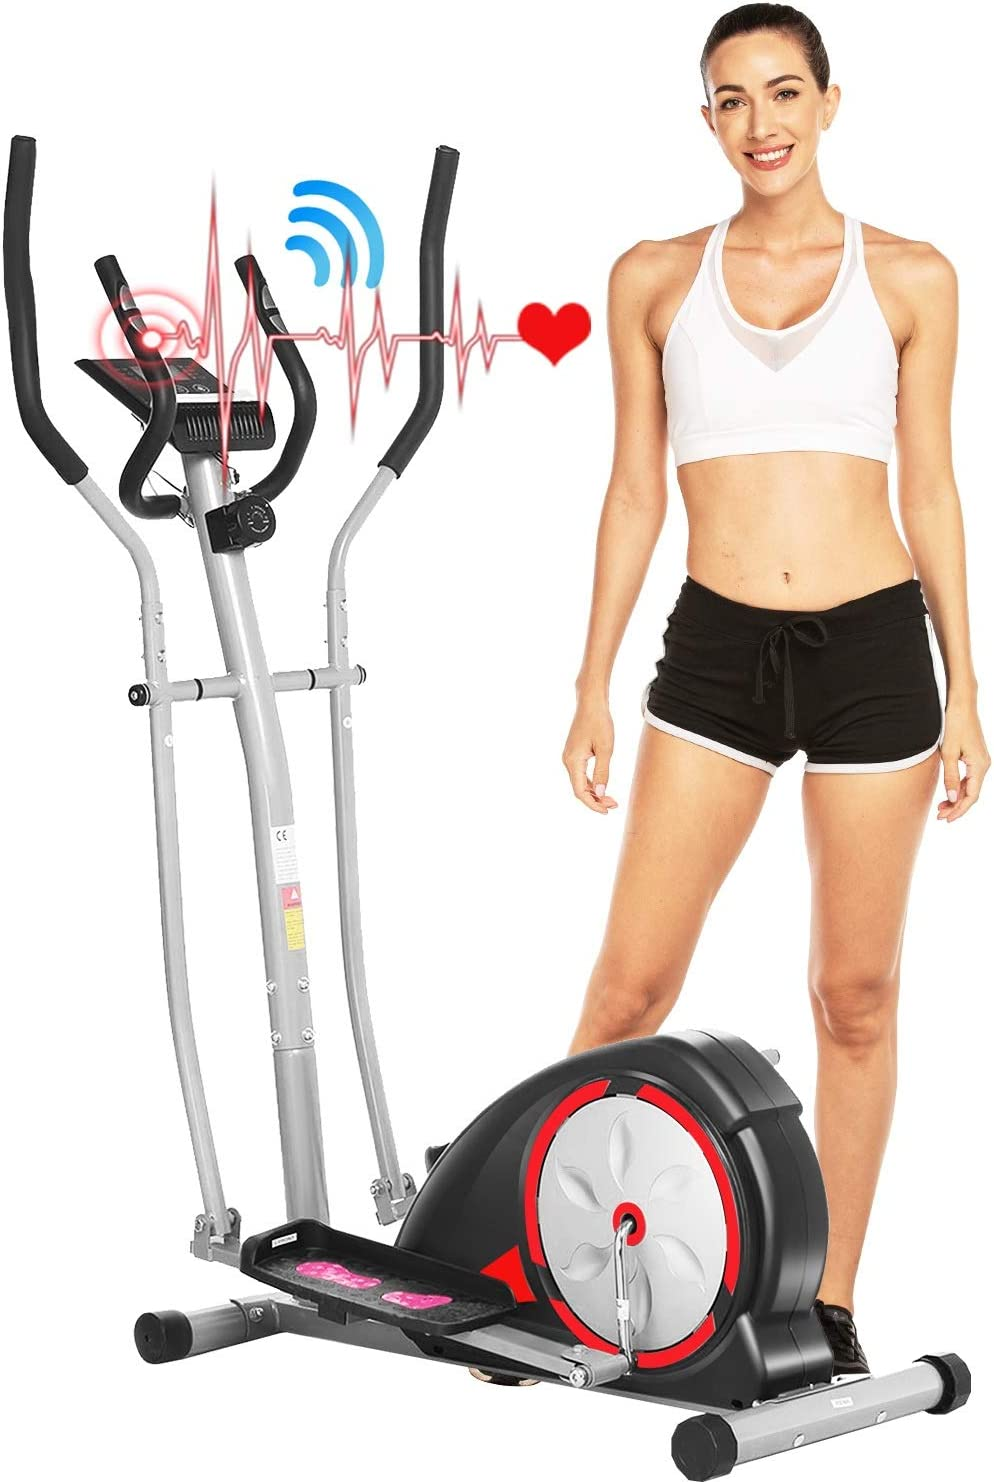 ANCHEER Elliptical Machine, Elliptical Exercise Trainer Machine with LCD Monitor and Pulse Rate Grips, Magnetic Smooth Quiet Driven for Home...